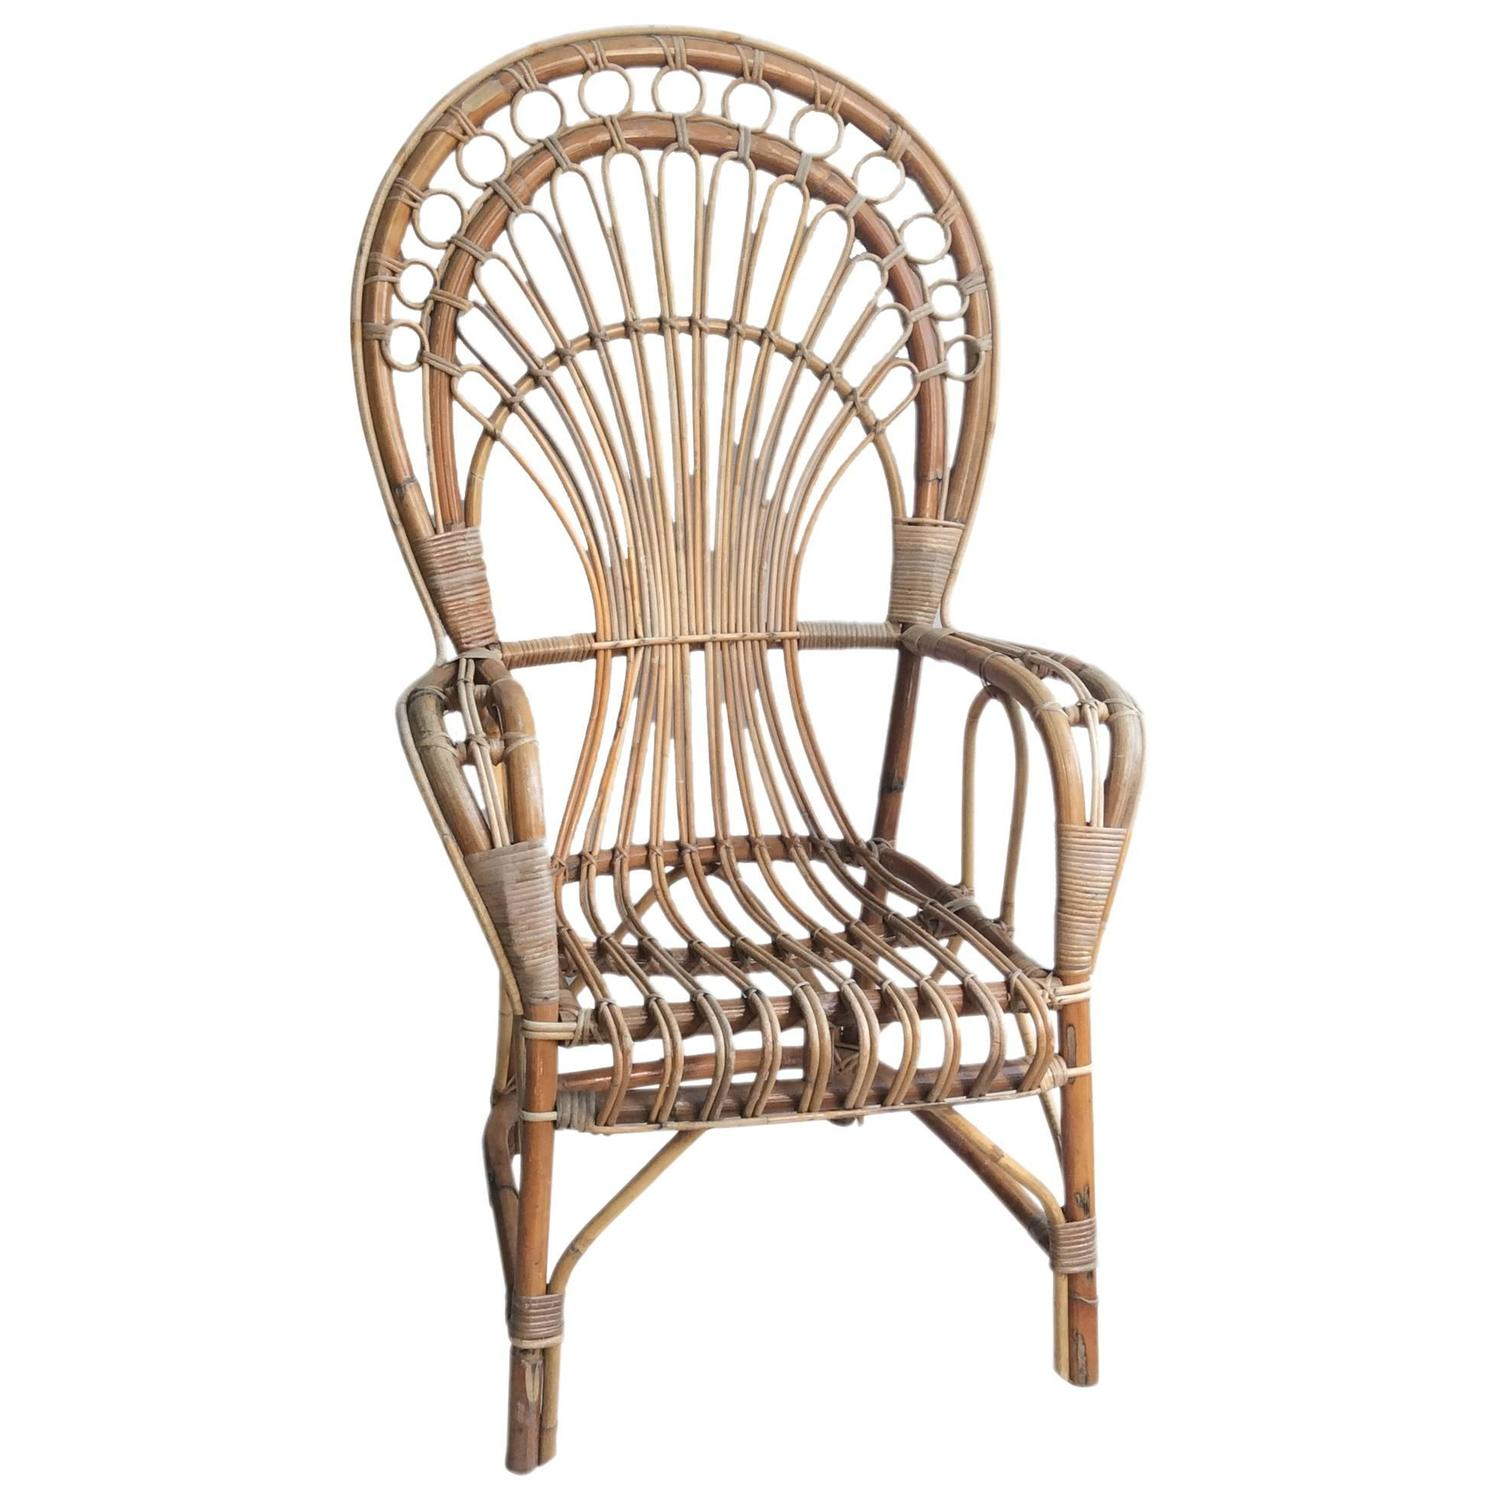 Iconic Rattan Peacock Chair 1970s For Sale at 1stdibs